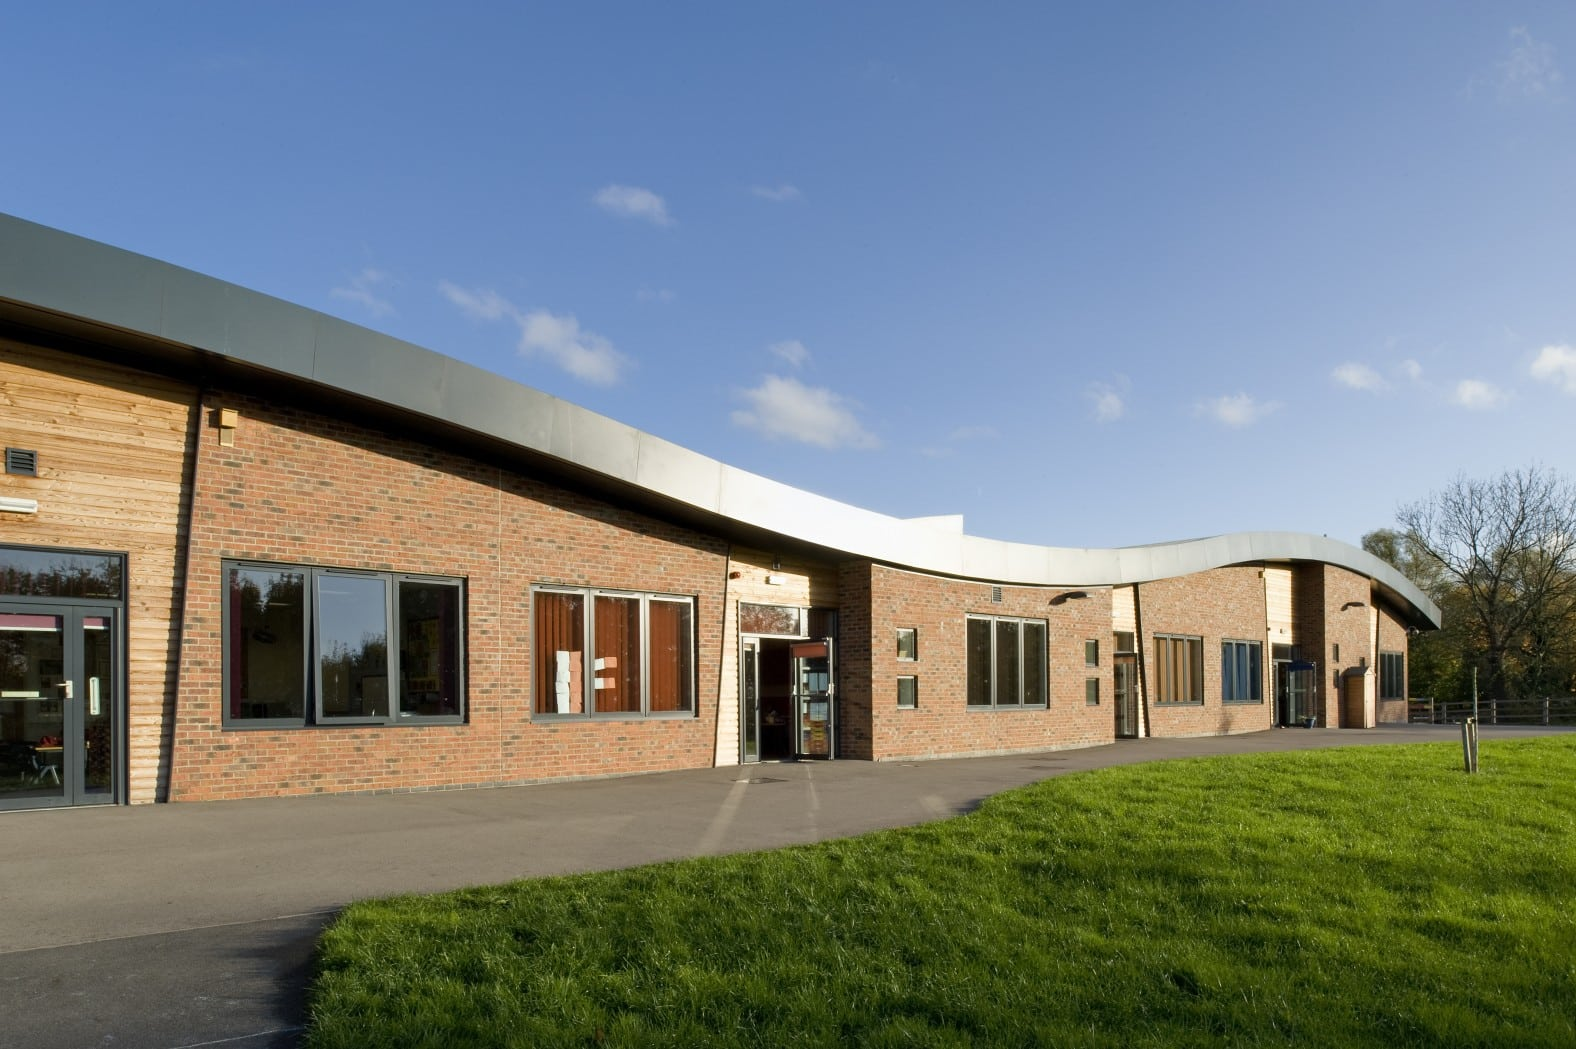 Thinking about St. Mary's Cockerton for your child for September 2019? - If you are thinking about St. Mary's Cockerton for your child's school in September 2019, we would like to show you round and tell you about our school. Please contact the school office (01325 380758 or admin@stmaryscockerton.org.uk) to make an appointment. We look forward to seeing you!